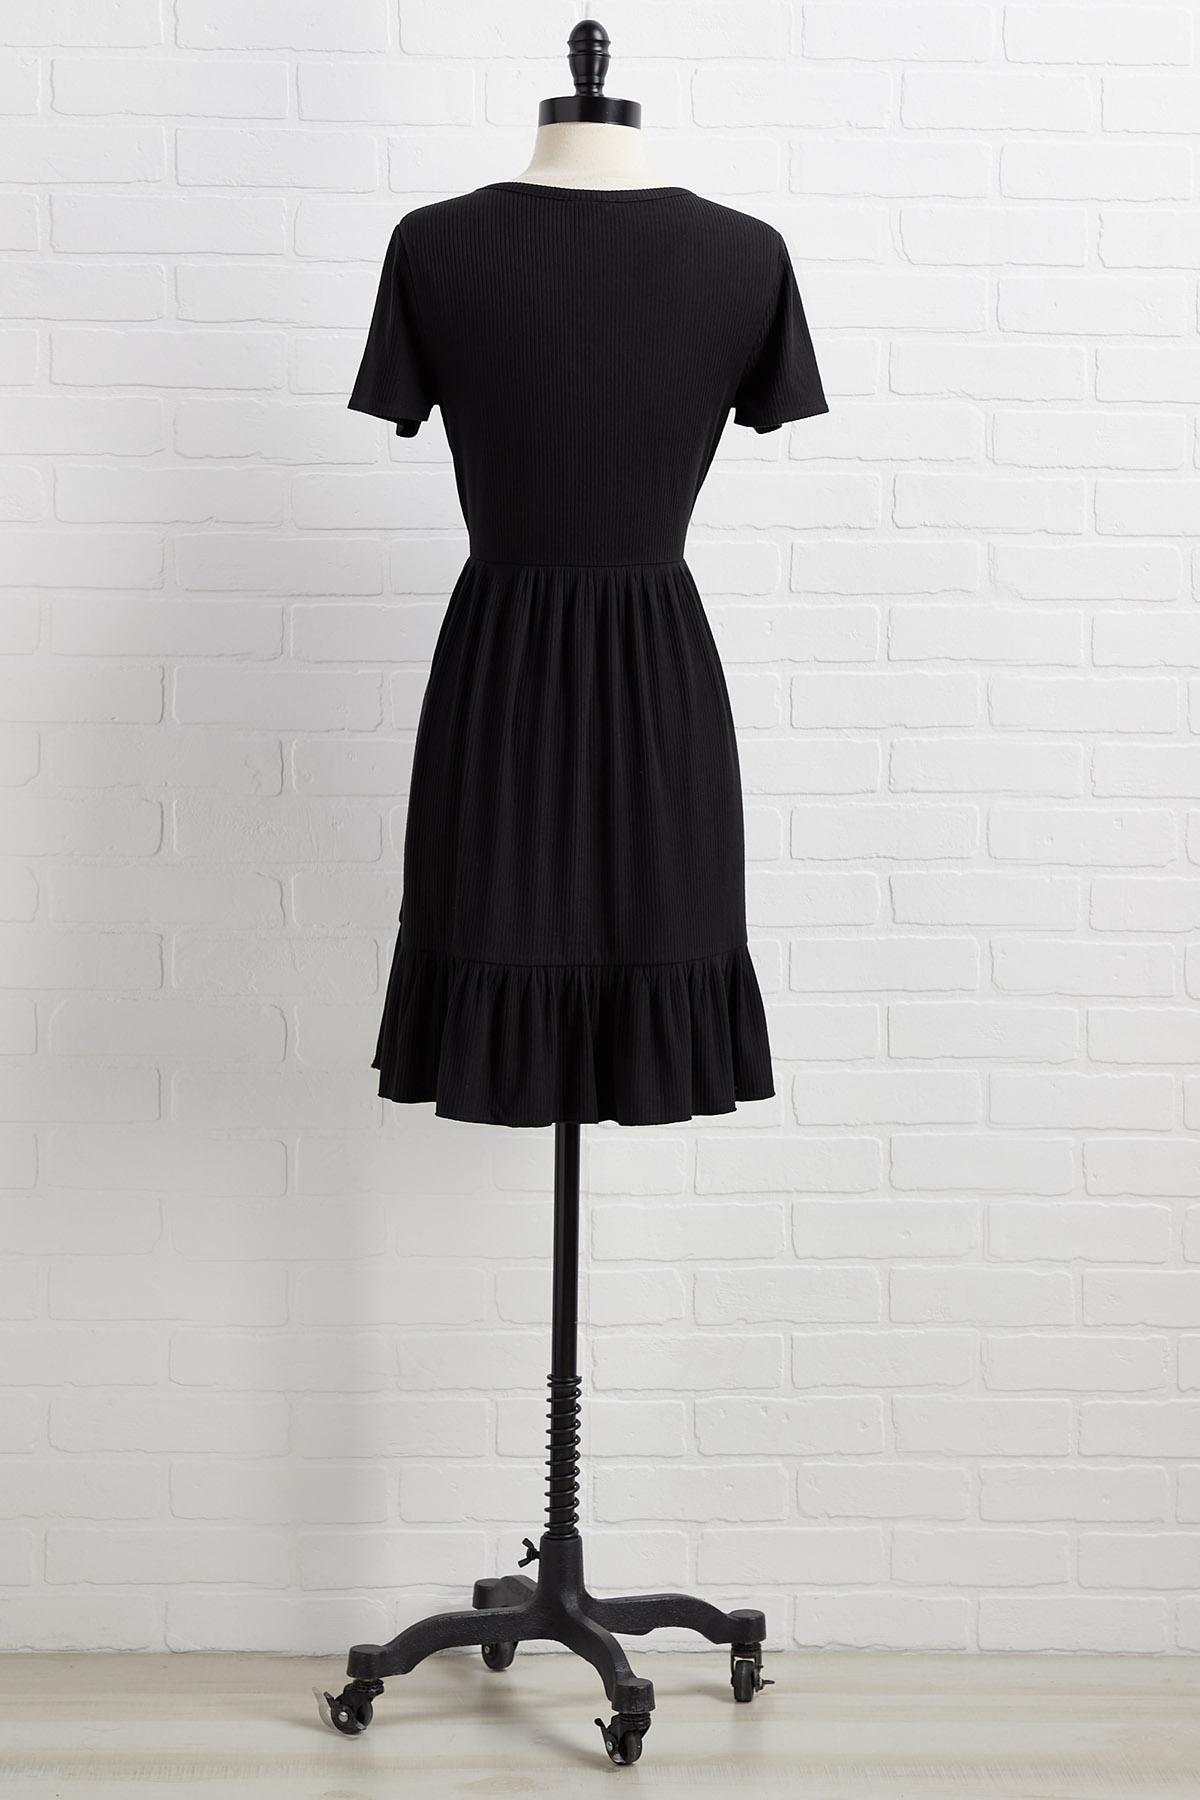 Simply The Best Dress